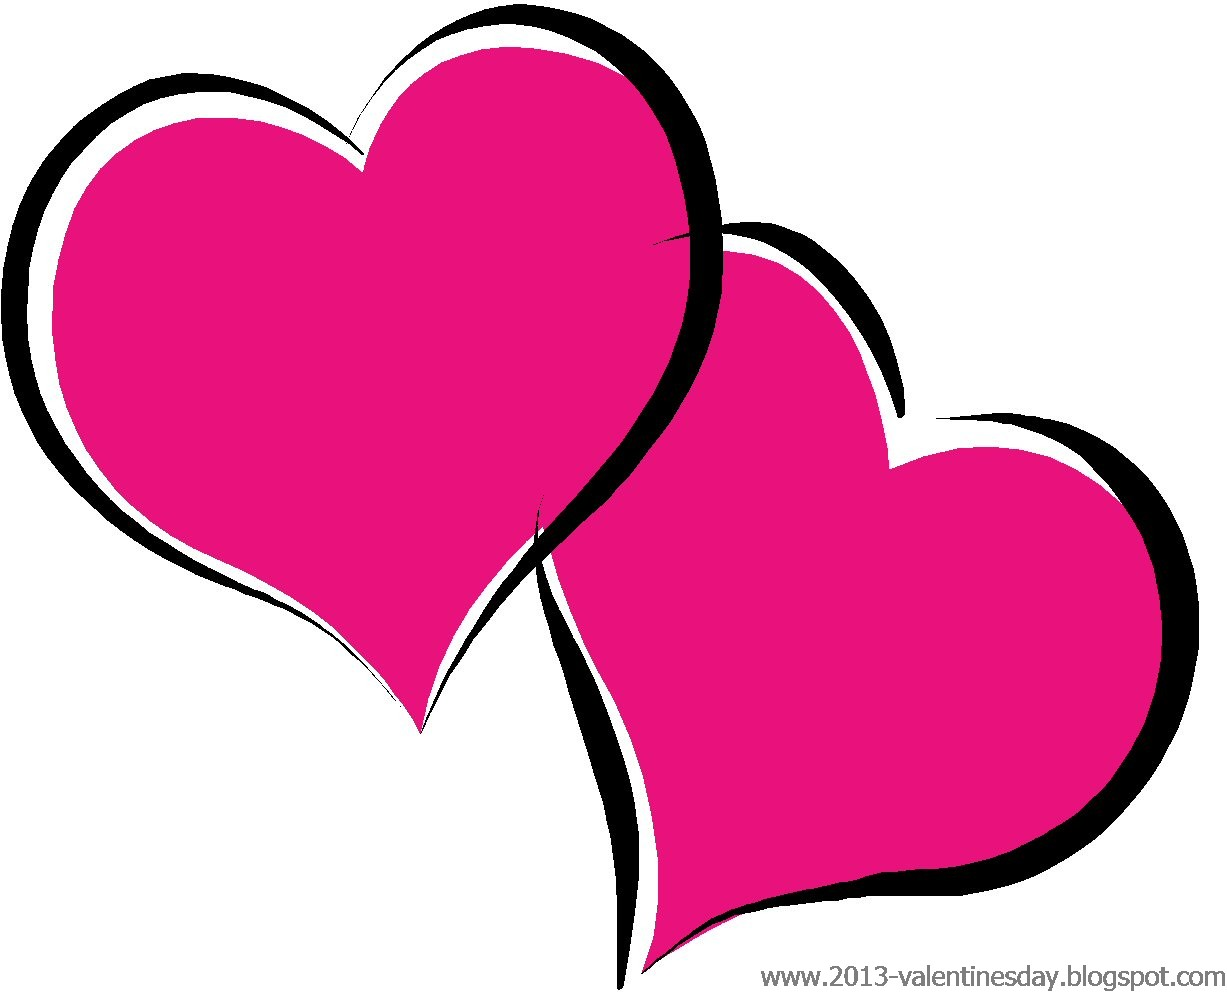 Valentines Day Clip art images - 89.2KB